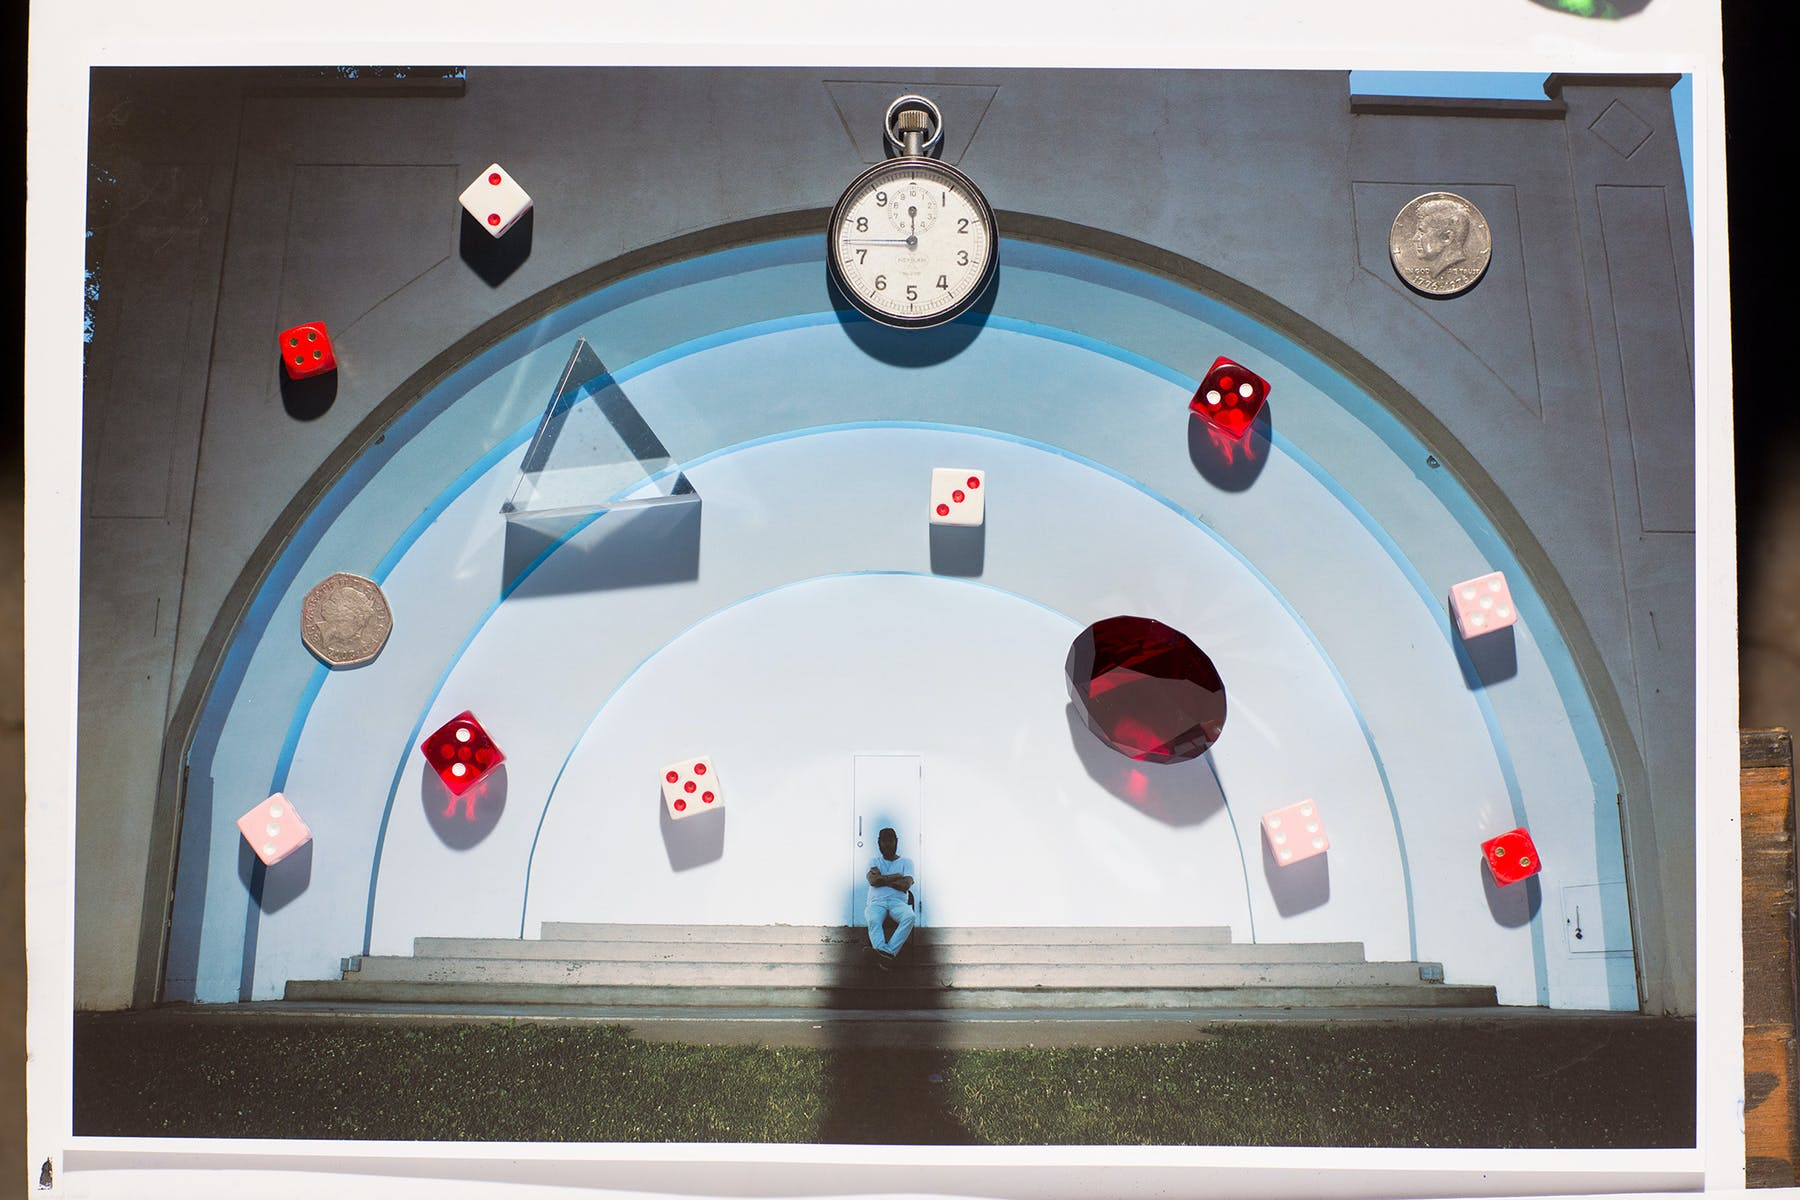 staged view of a tunnel with various objects